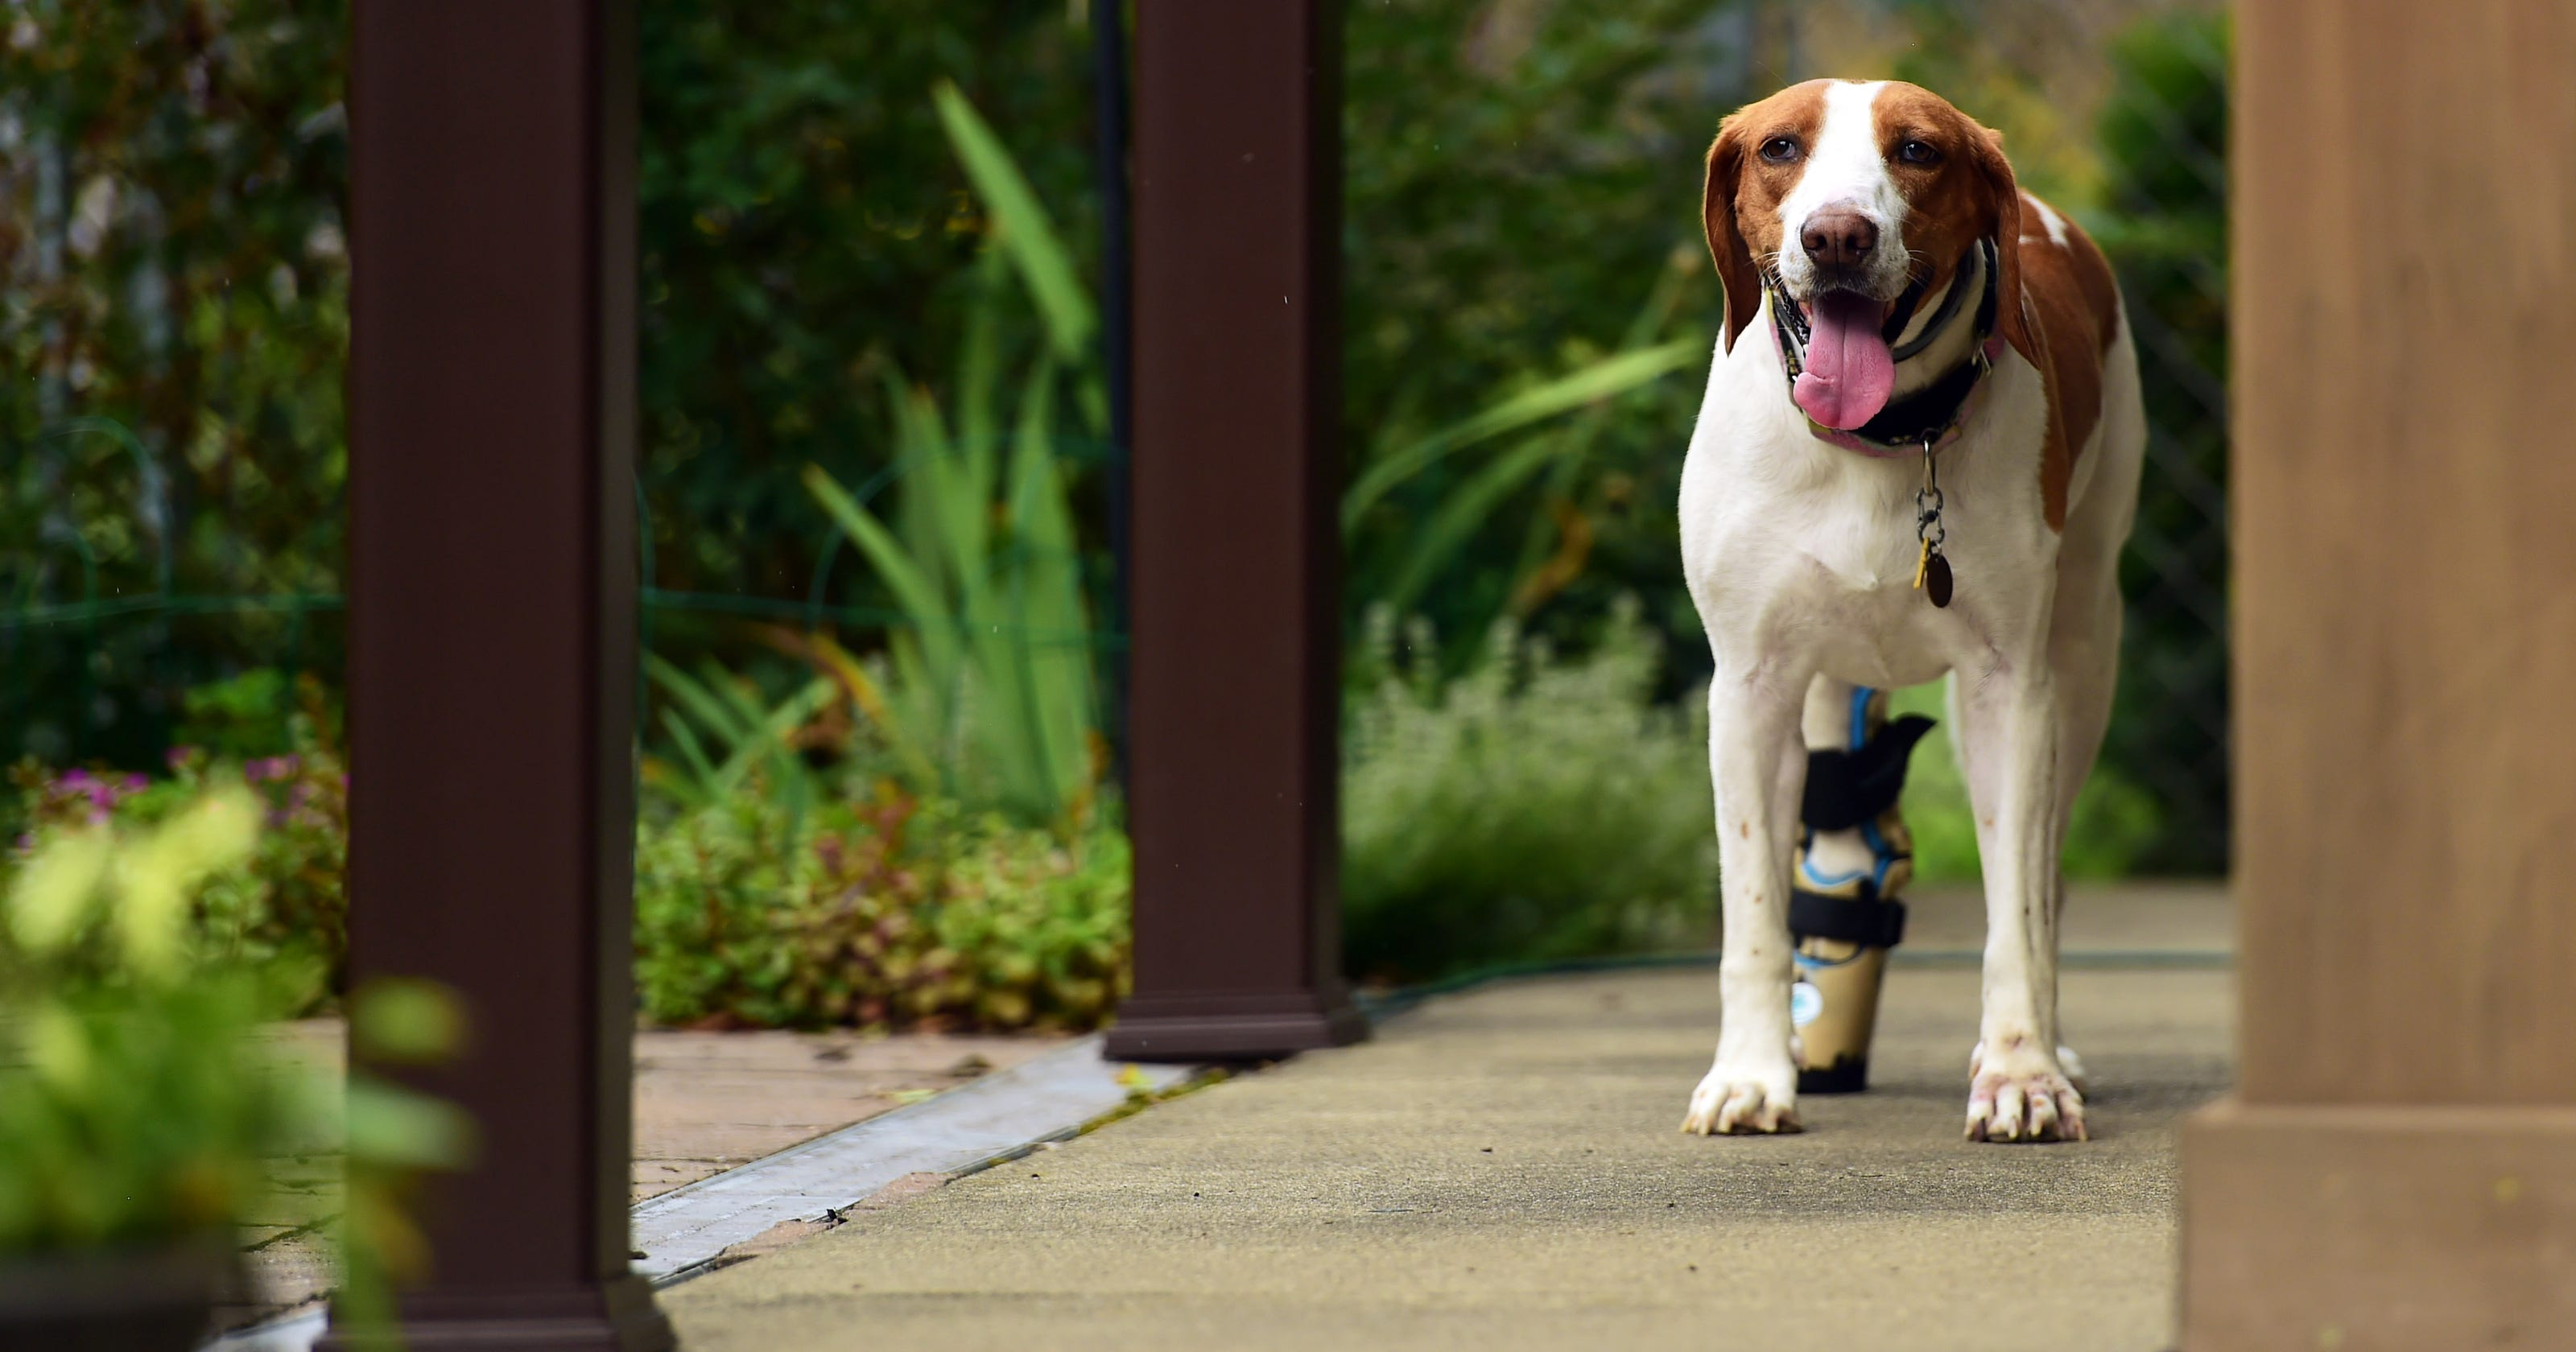 Cornell prosthetic helps West Virginia dog found in NY